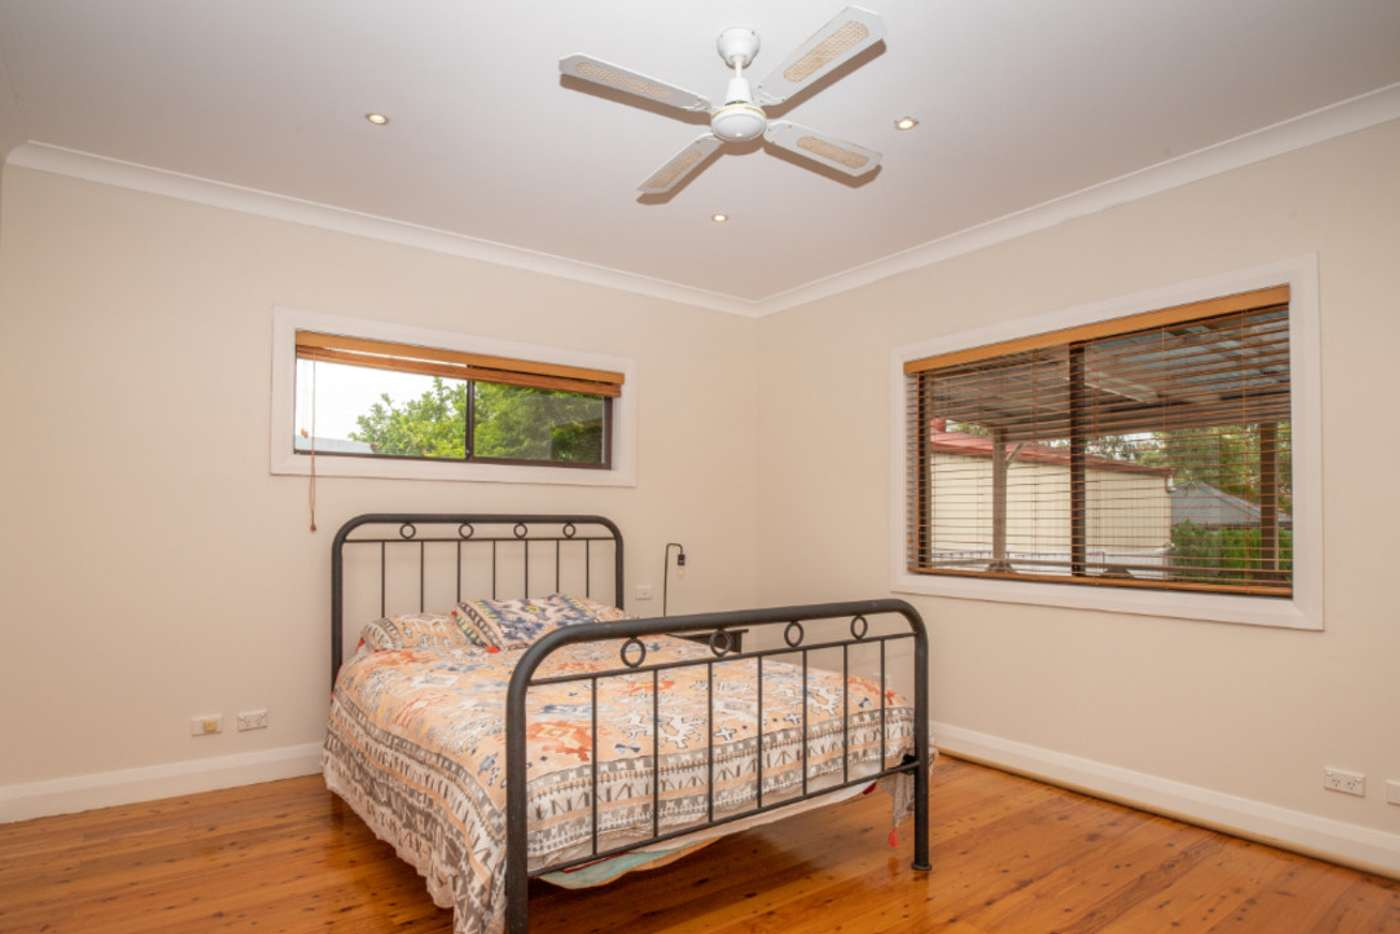 Sixth view of Homely house listing, 38 Hawkesbury Valley Way, Windsor NSW 2756